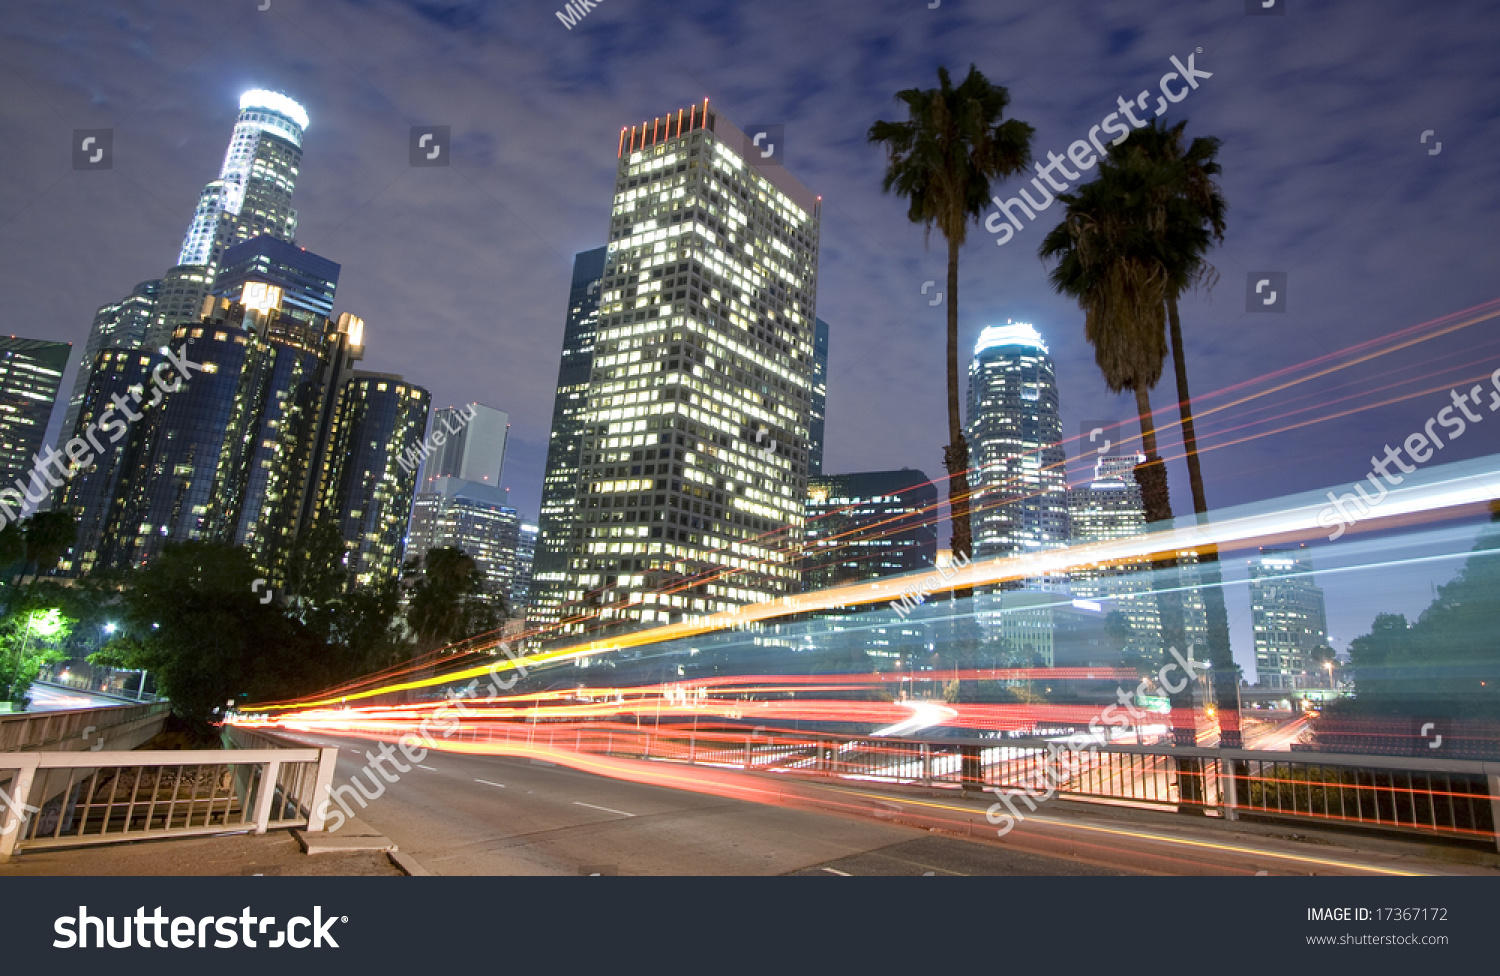 Los angeles traffic city skyline panoramic stock photo 17367172 shutterstock - Panoramic les angles ...